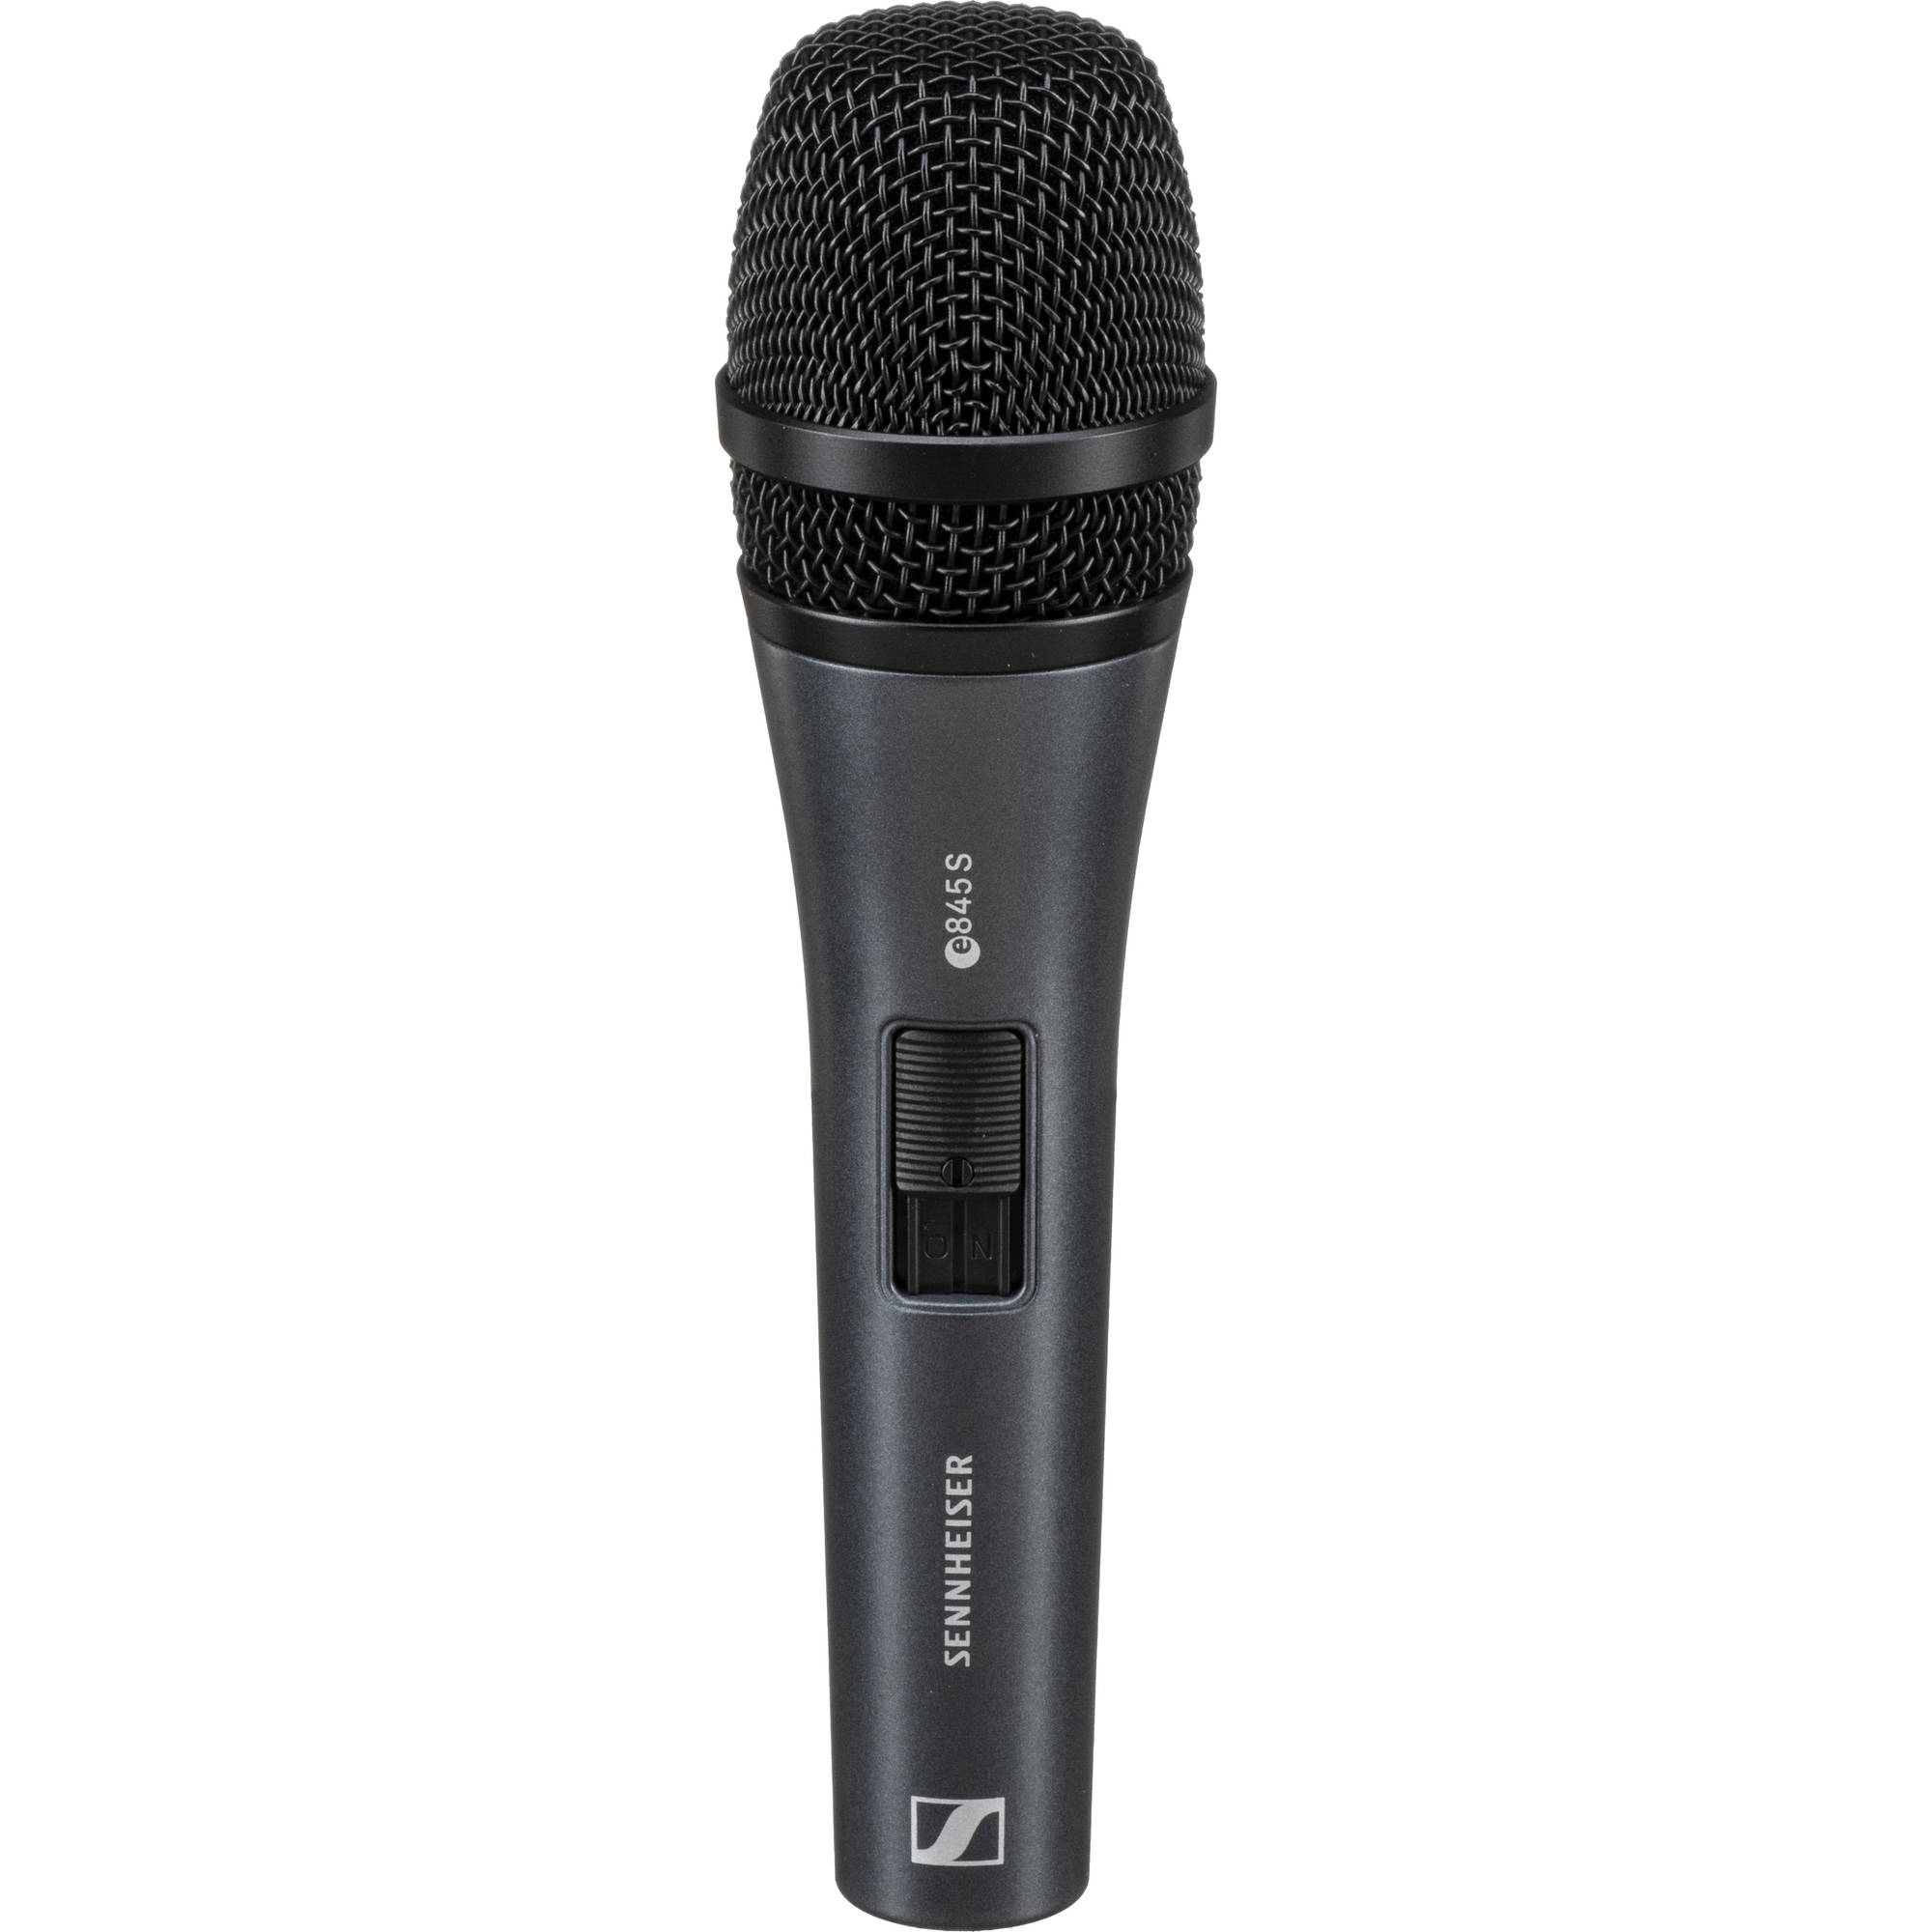 Sennheiser e845-S - Supercardioid Handheld Dynamic Microphone with Switch